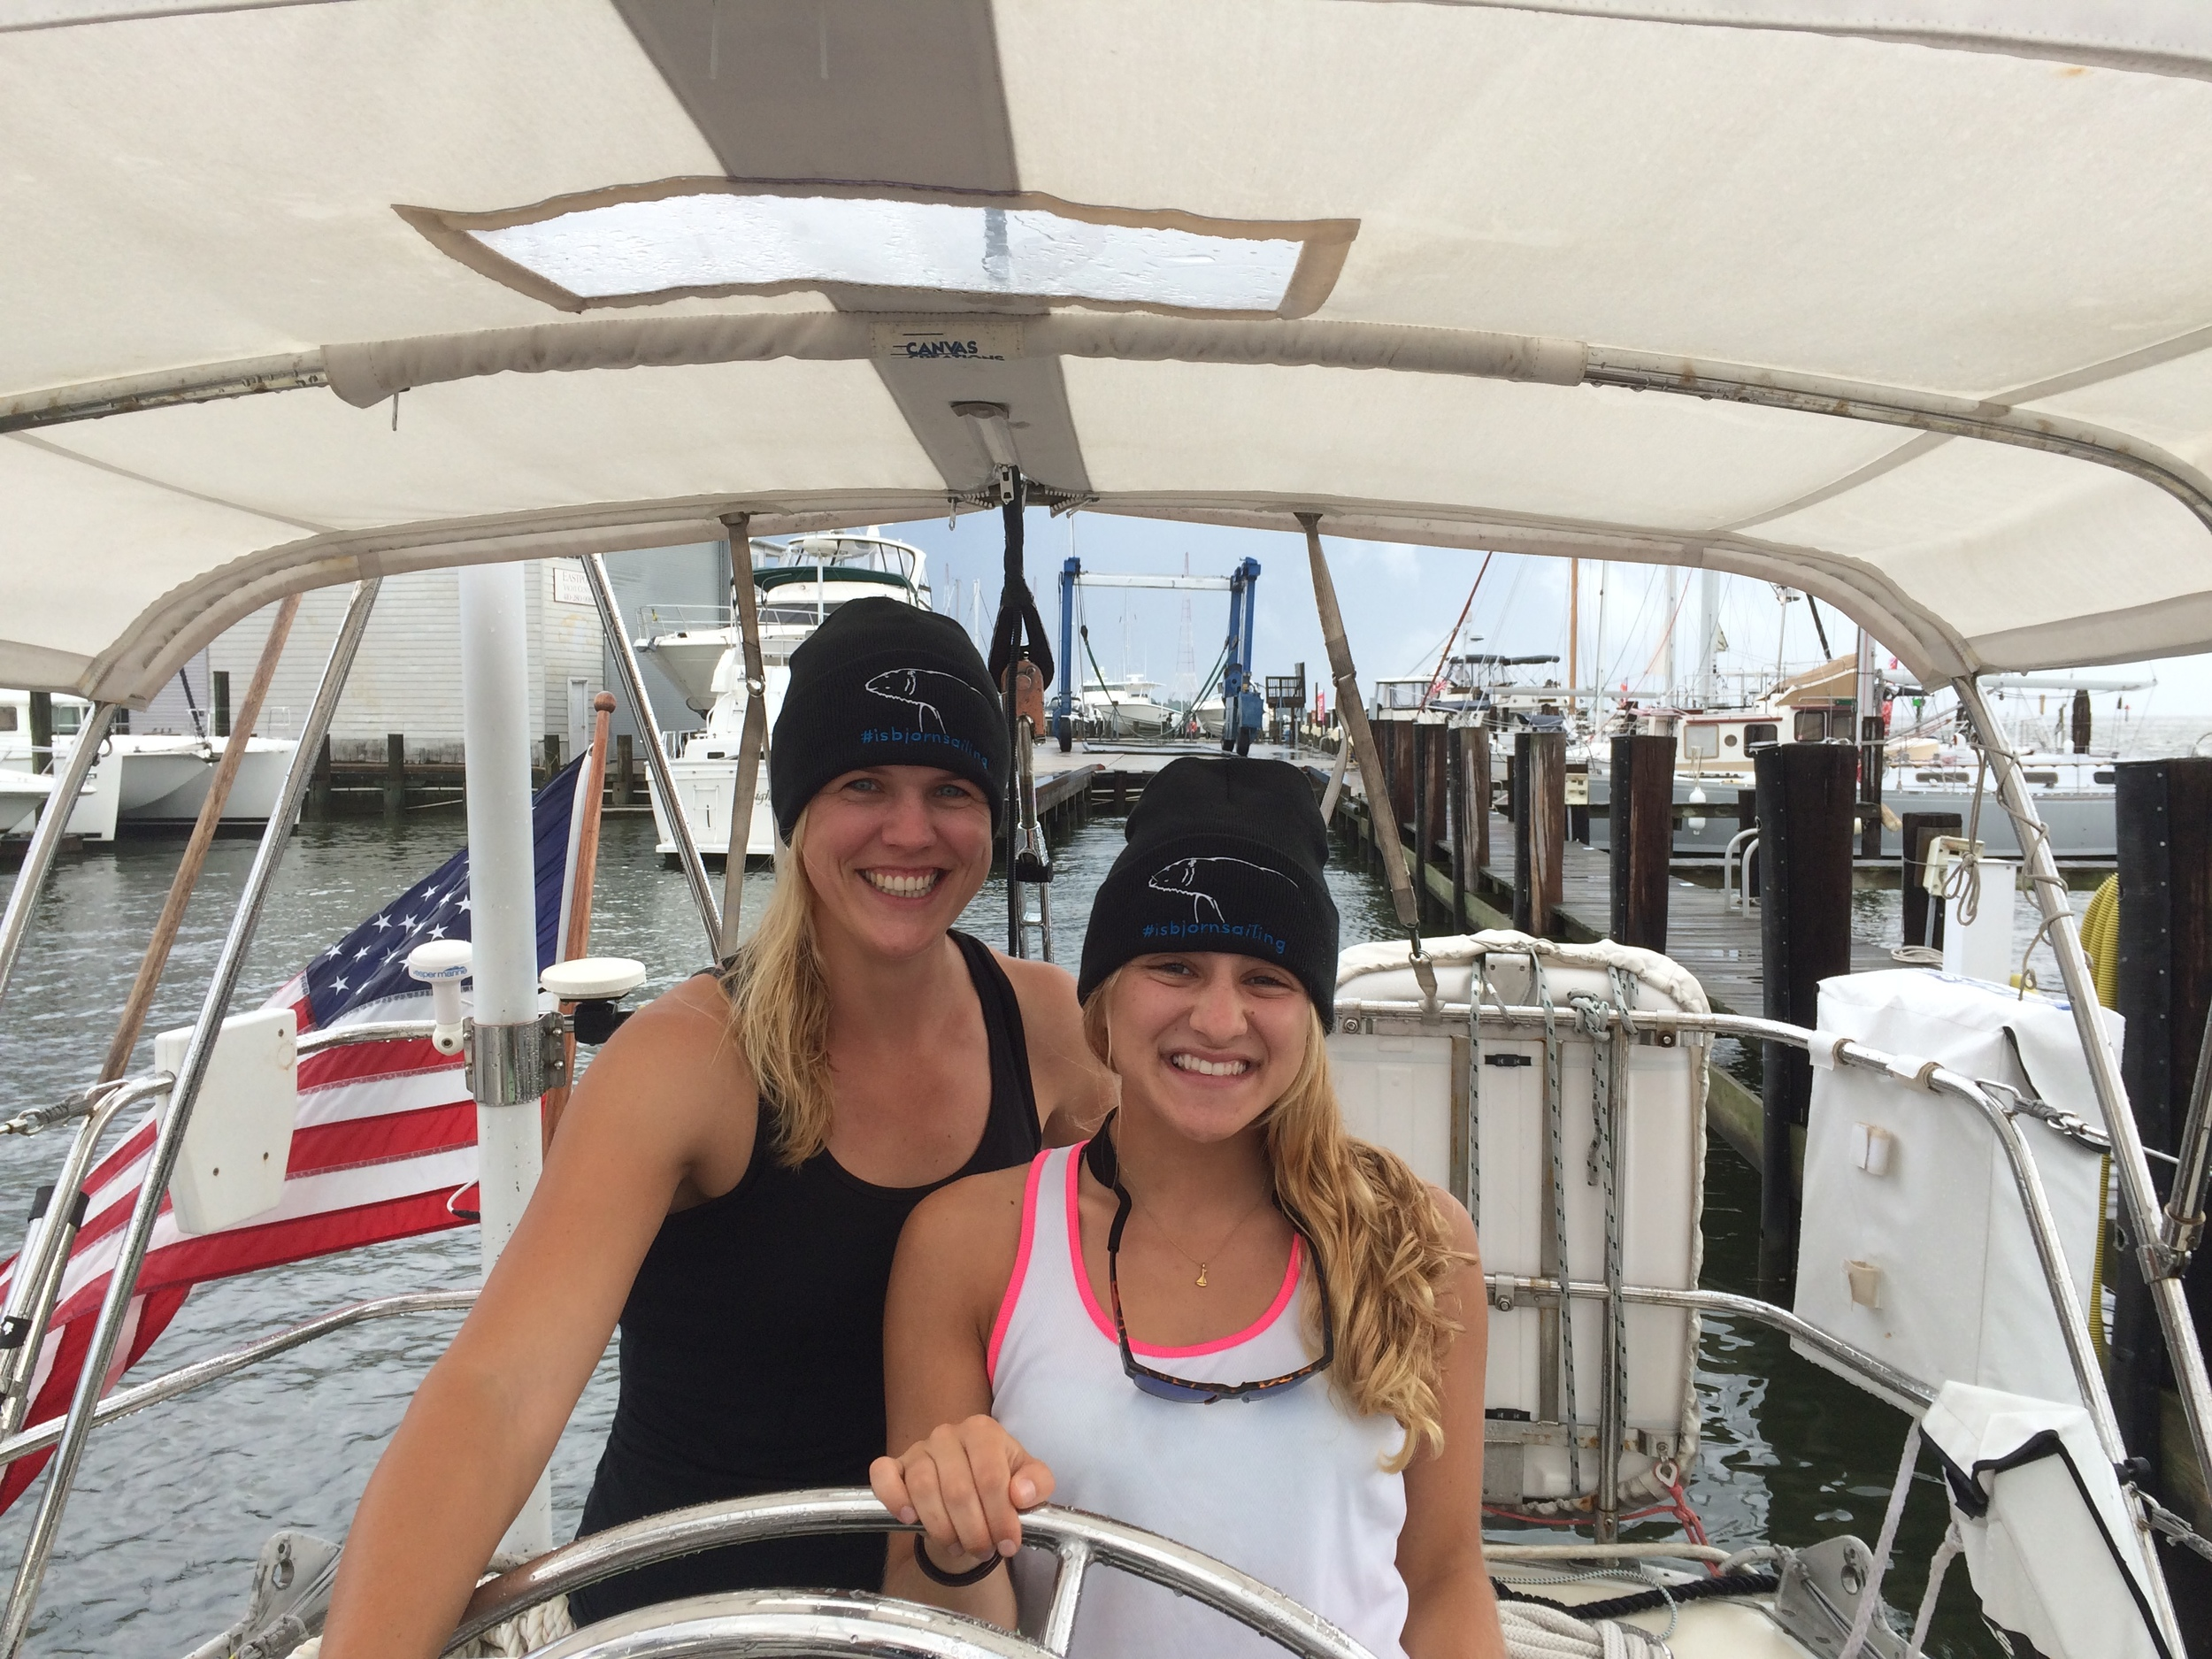 Mia & Liz modeling the new #isbjornsailing beanies prior to departure in Annapolis!